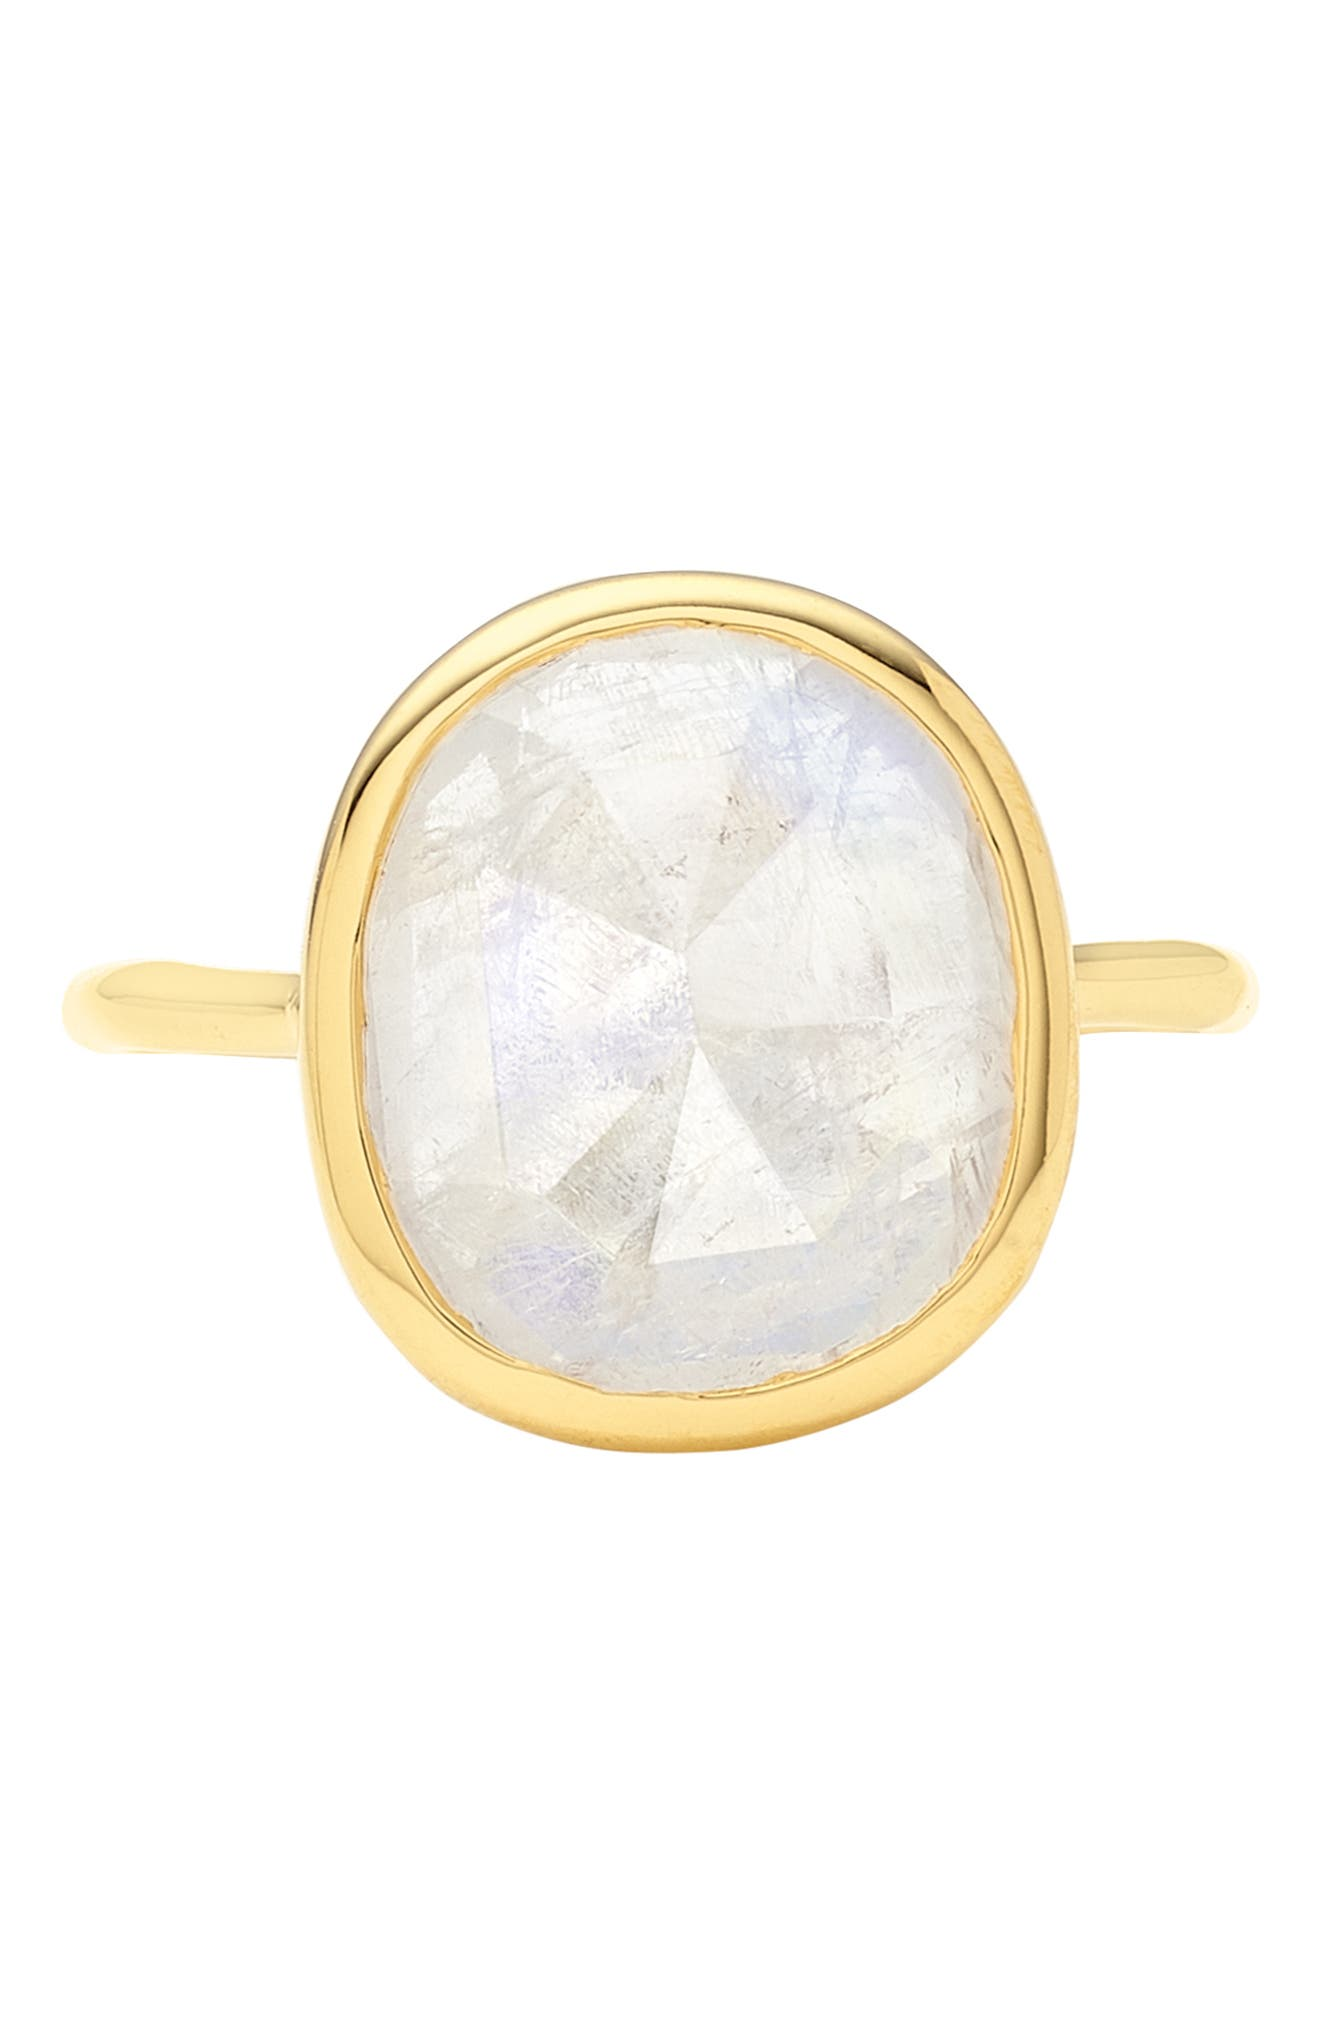 Siren Semiprecious Stone Ring,                             Alternate thumbnail 4, color,                             GOLD/ MOONSTONE